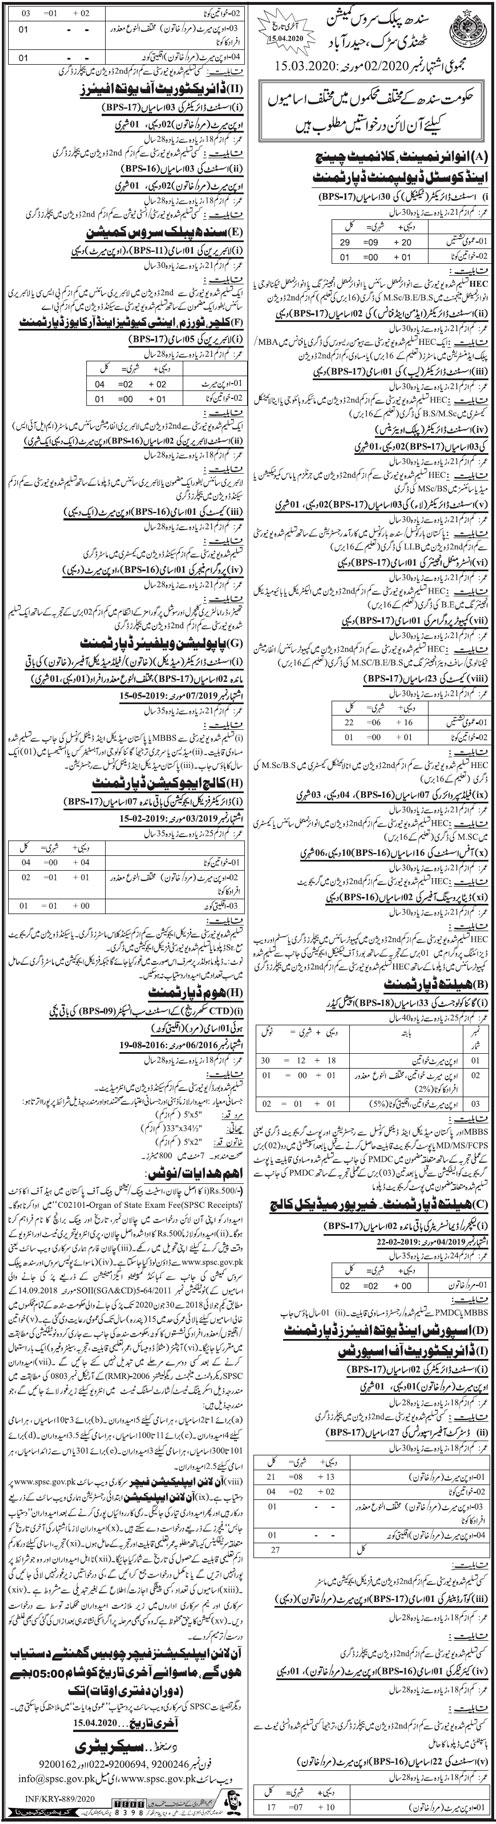 Jobs Announced In Sindh Public Service Commission (SPSC) 16 March 2020